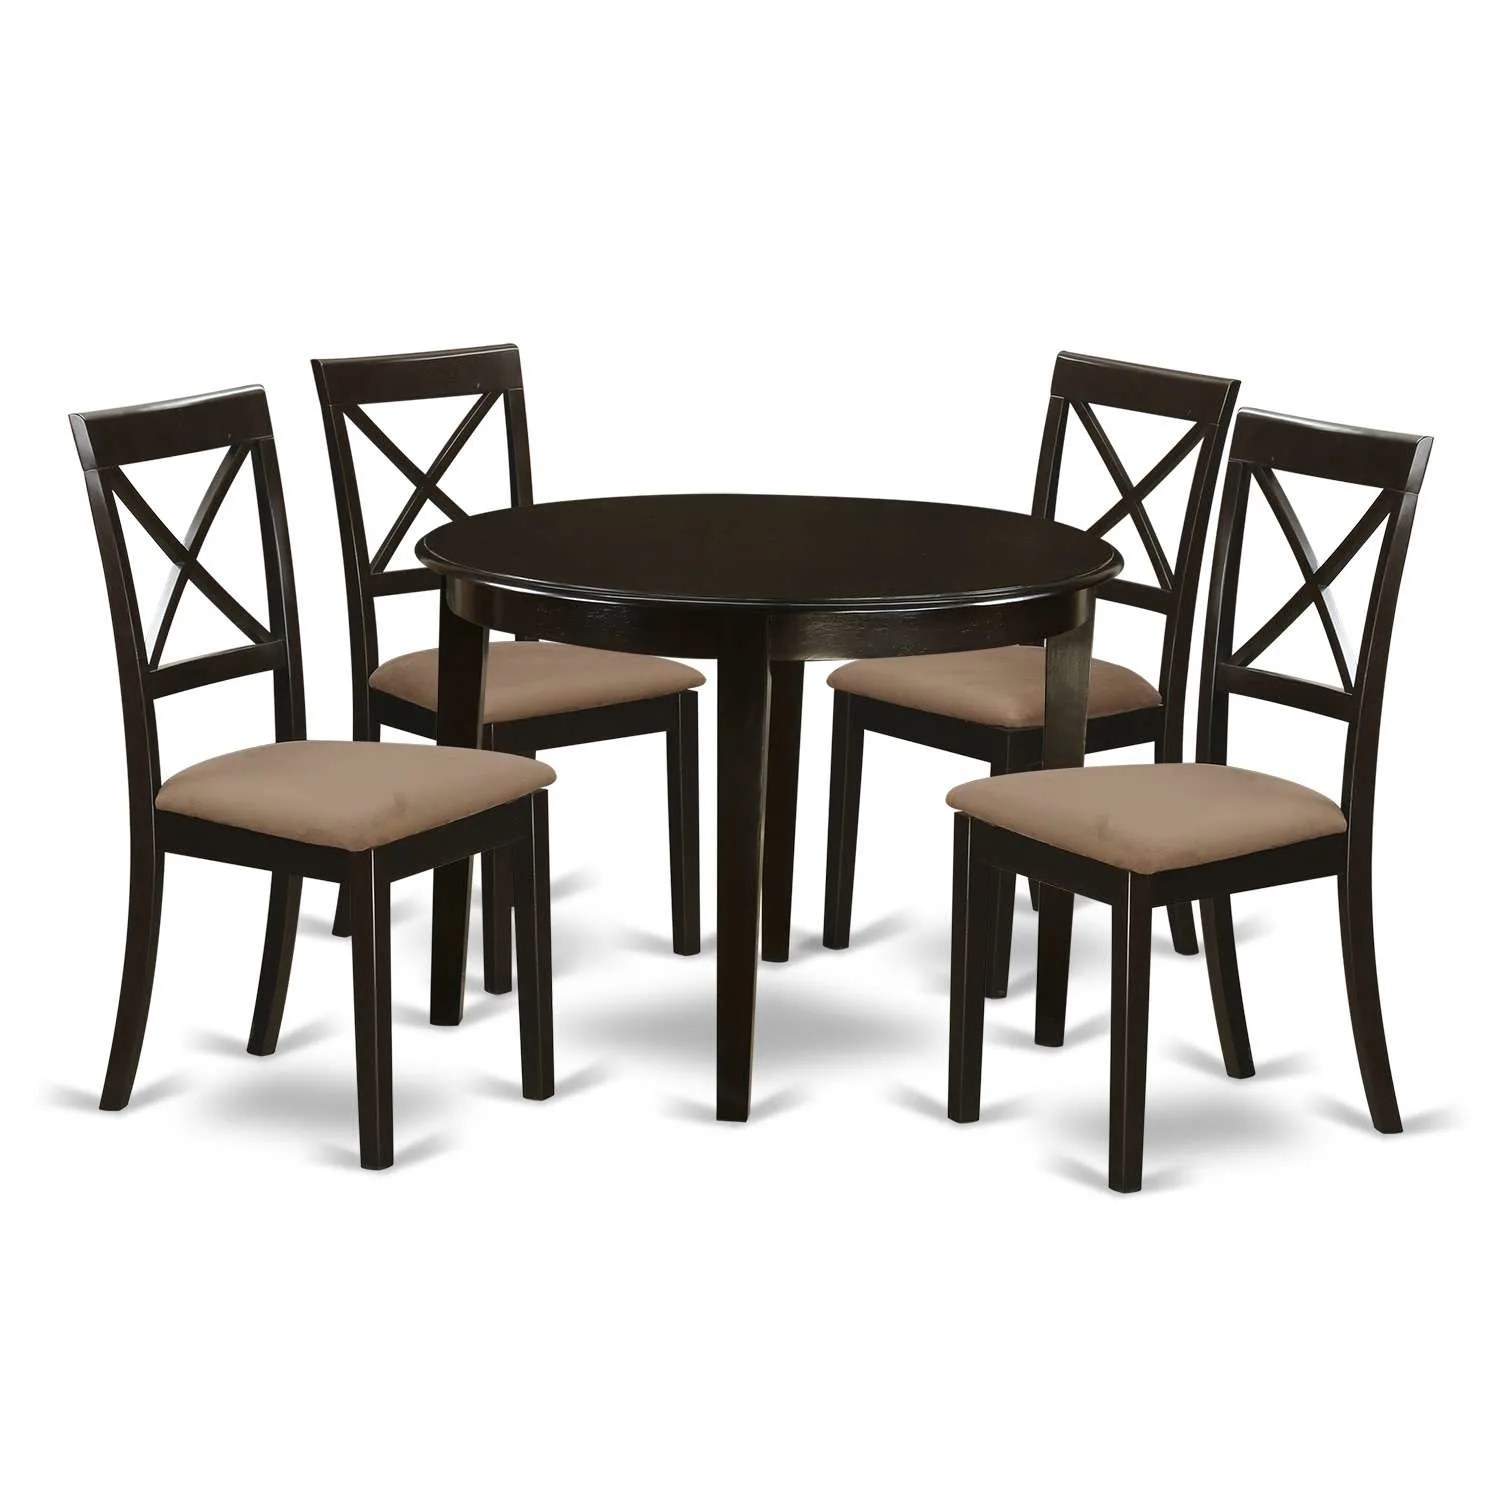 Set Of 4 Kitchen Chairs East West Furniture Bost5 Cap C